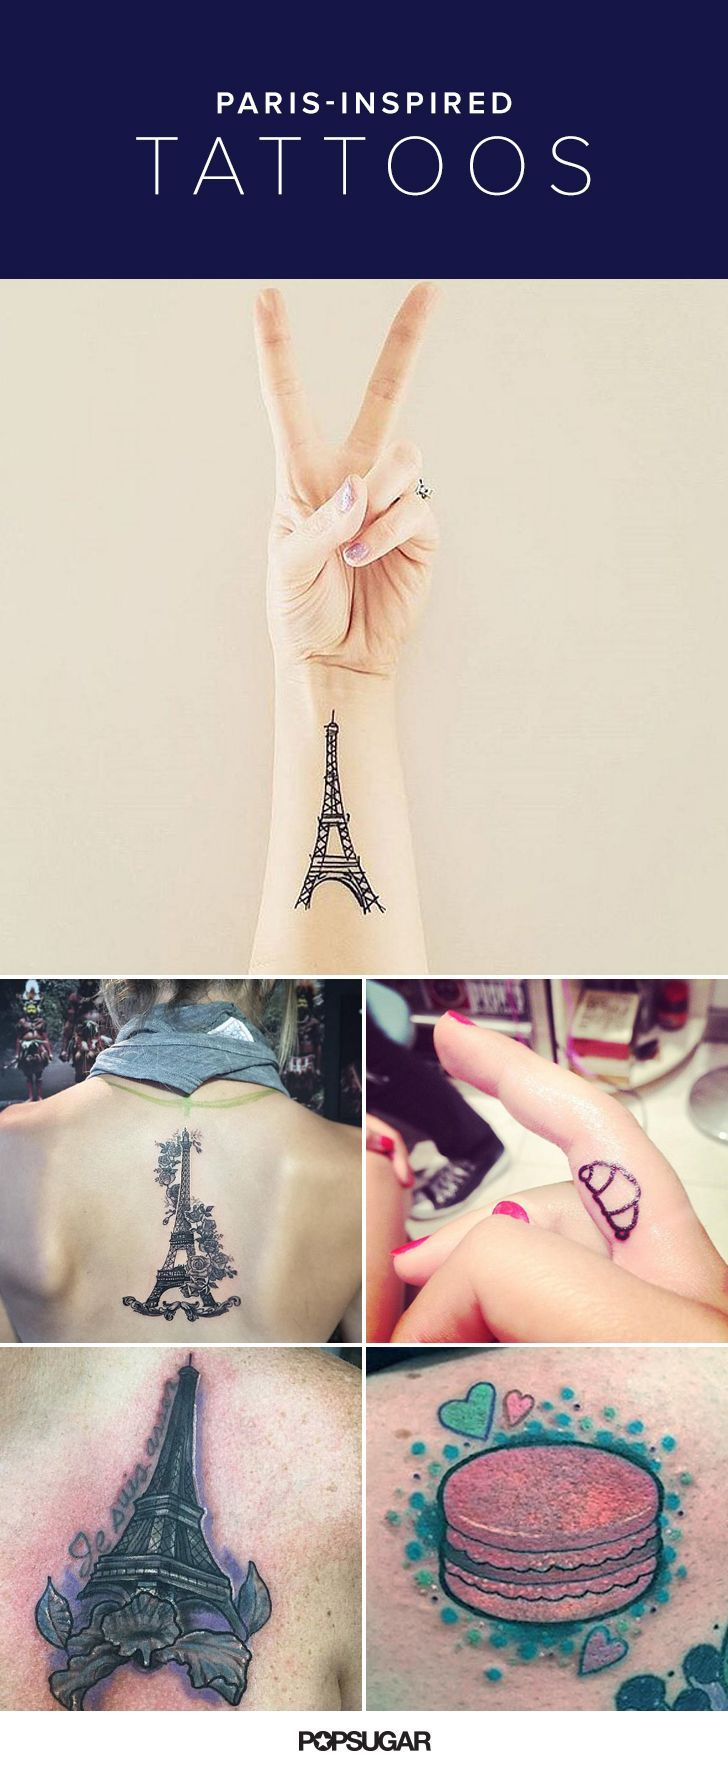 When tragedy strikes, people do extreme things. Whether you lost a loved one in the Nov. 13 terrorist attacks in Paris or just feel devastated by the news, there is a permanent way to honor the victims: a tattoo. We searched the Internet for French-inspired ink ideas that incorporate motifs of Eiffel Towers, macarons, and more. Some make a political statement, and others are pure kitsch. But there is no better time than the present to share your Parisian pride and stand by France.